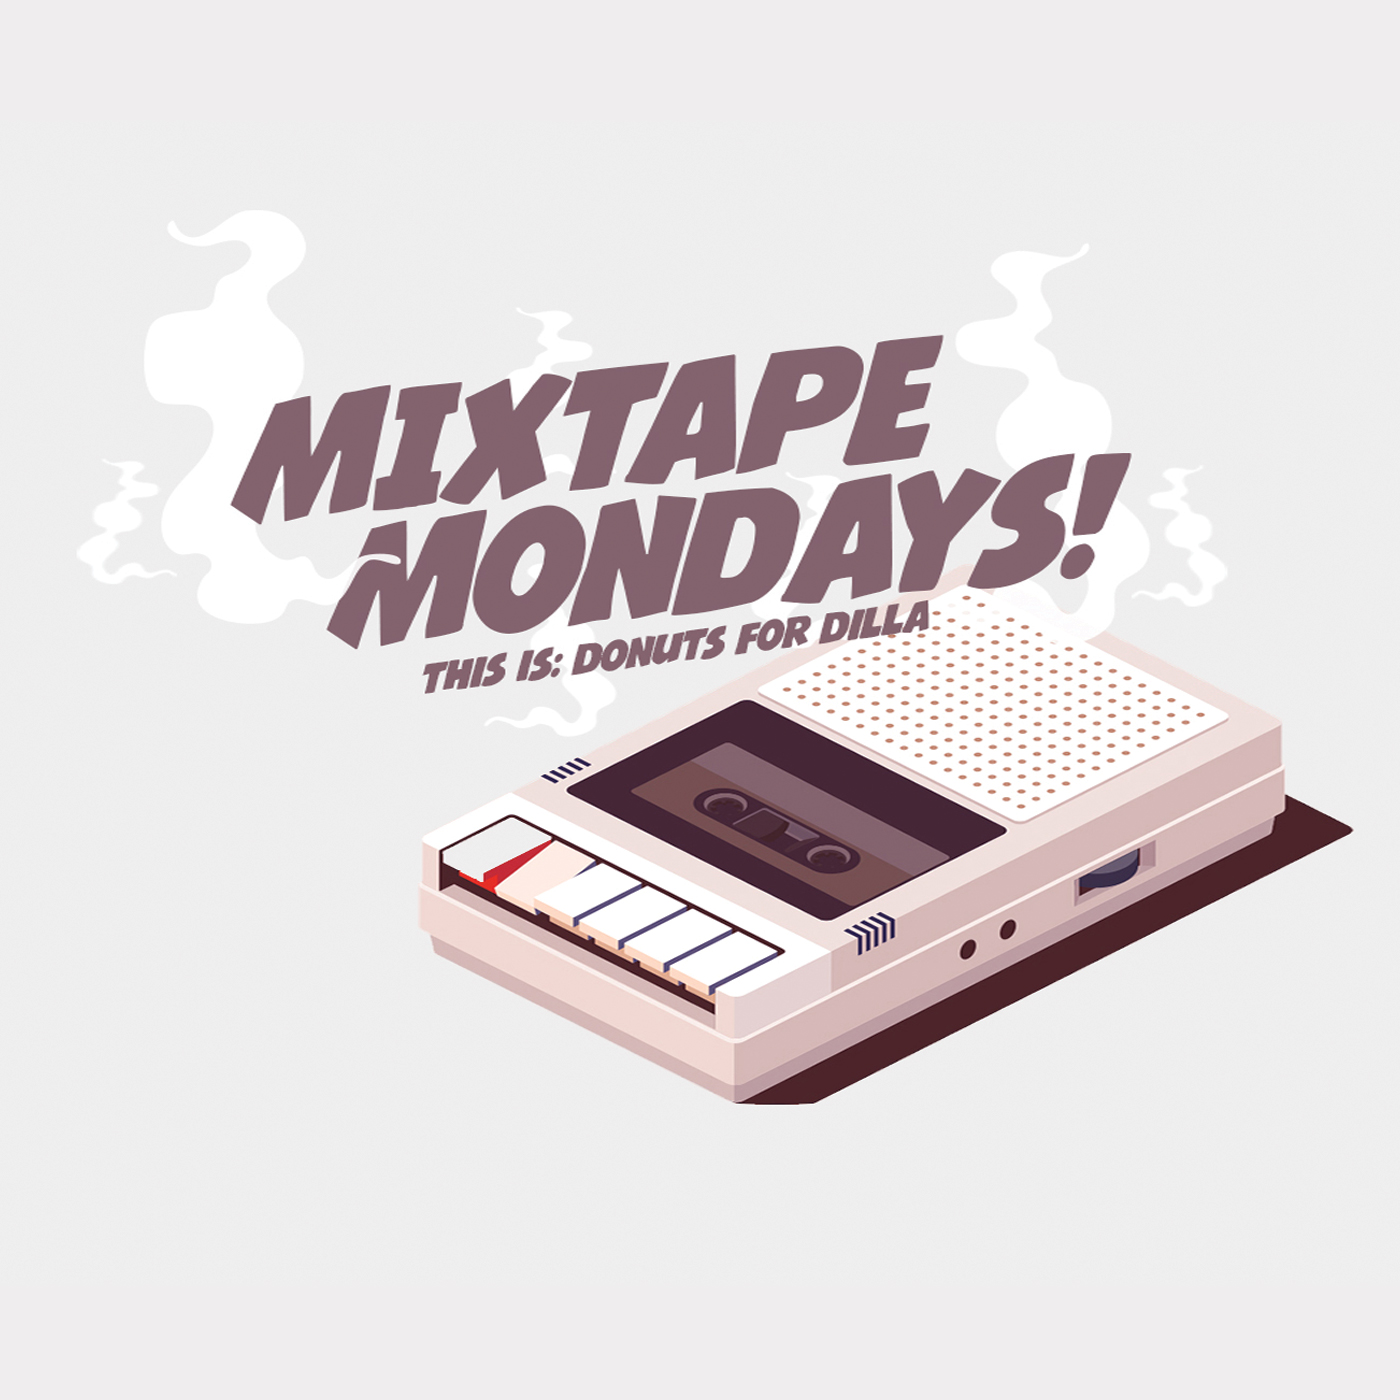 Mixtape Mondays - This is: Donuts for Dilla.